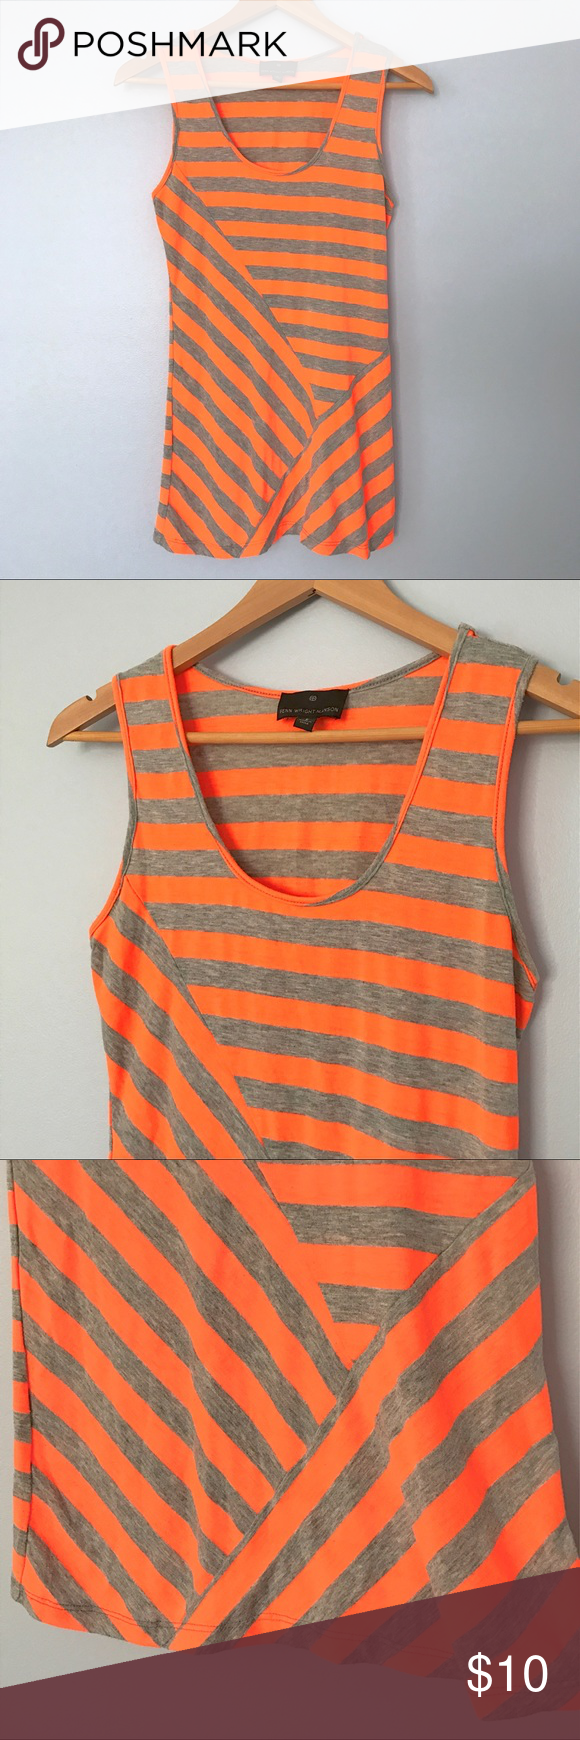 "Fenn Wright Manson Asymmetric Neon Tunic Tank Top Fenn Wright Manson neon striped long tank top.  Asymmetrical hem and seams.  Neon orange and heather gray stripes.  Gently used - no holes or stains, but there is a touch of wash wear.  47% rayon, 47% polyester, 6% spandex.  Approx. flat lay measurements: length 28"", width across underarms 15 1/2"". Fenn Wright Manson Tops Tank Tops"